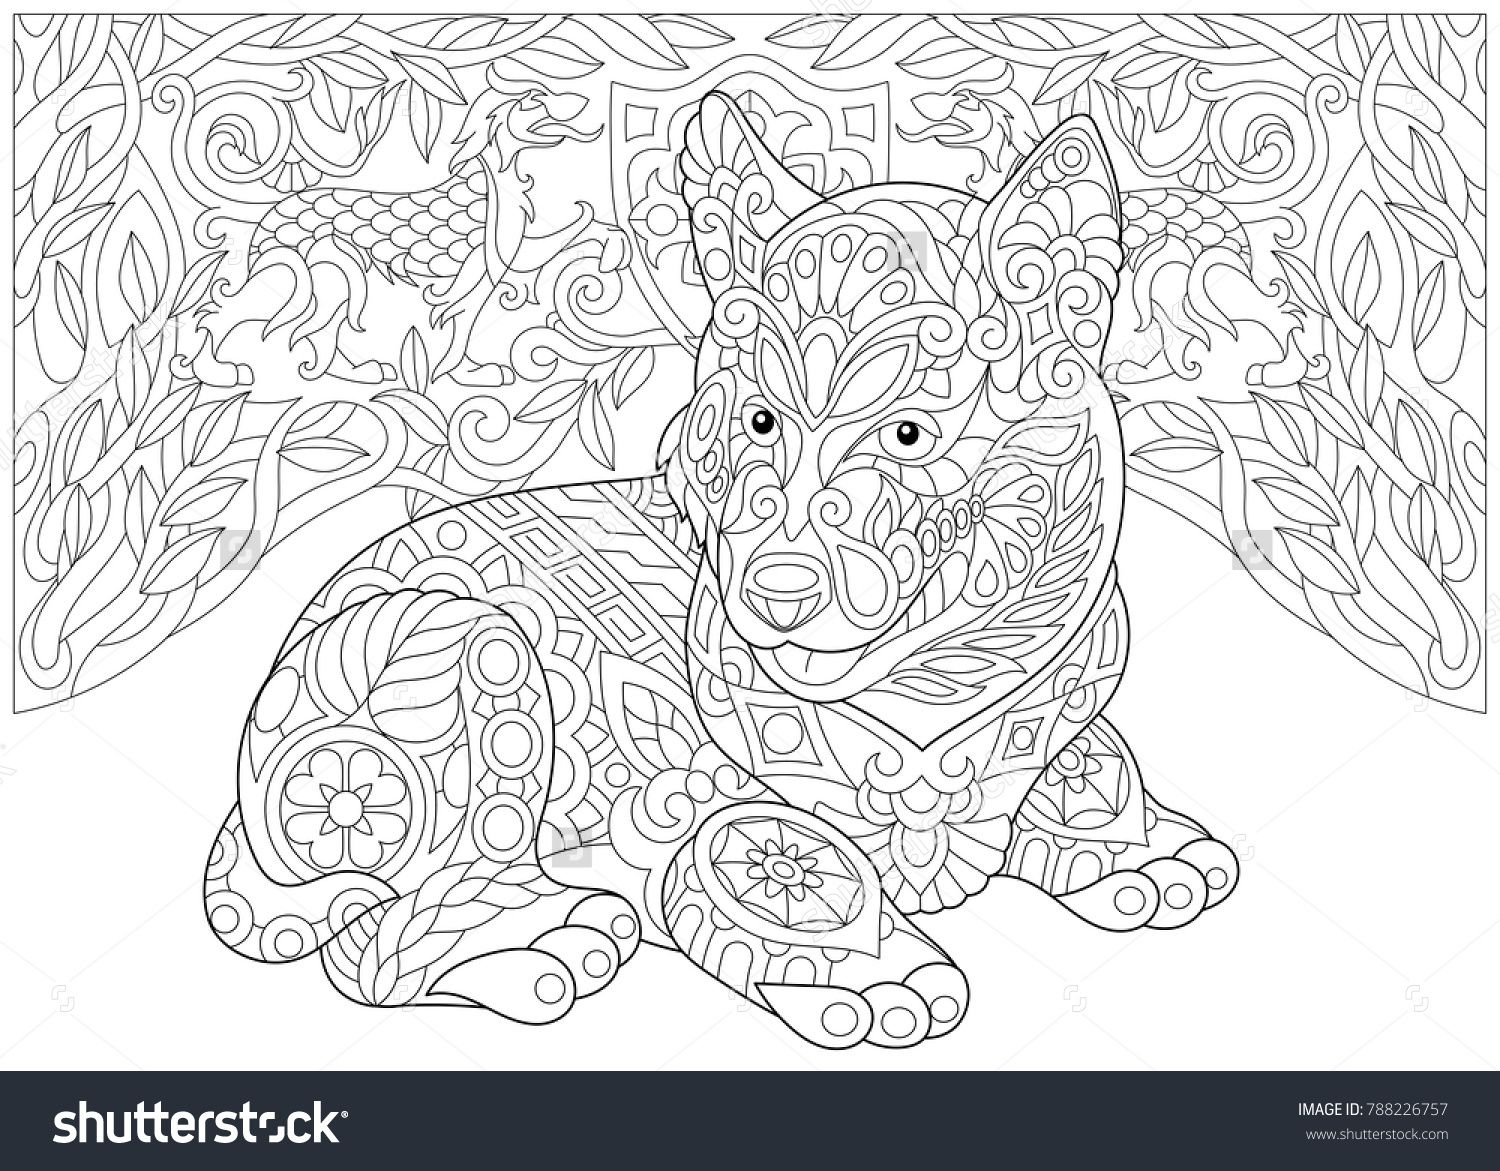 Coloring Page Adult Coloring Book Siberian Husky Puppy Alaskan